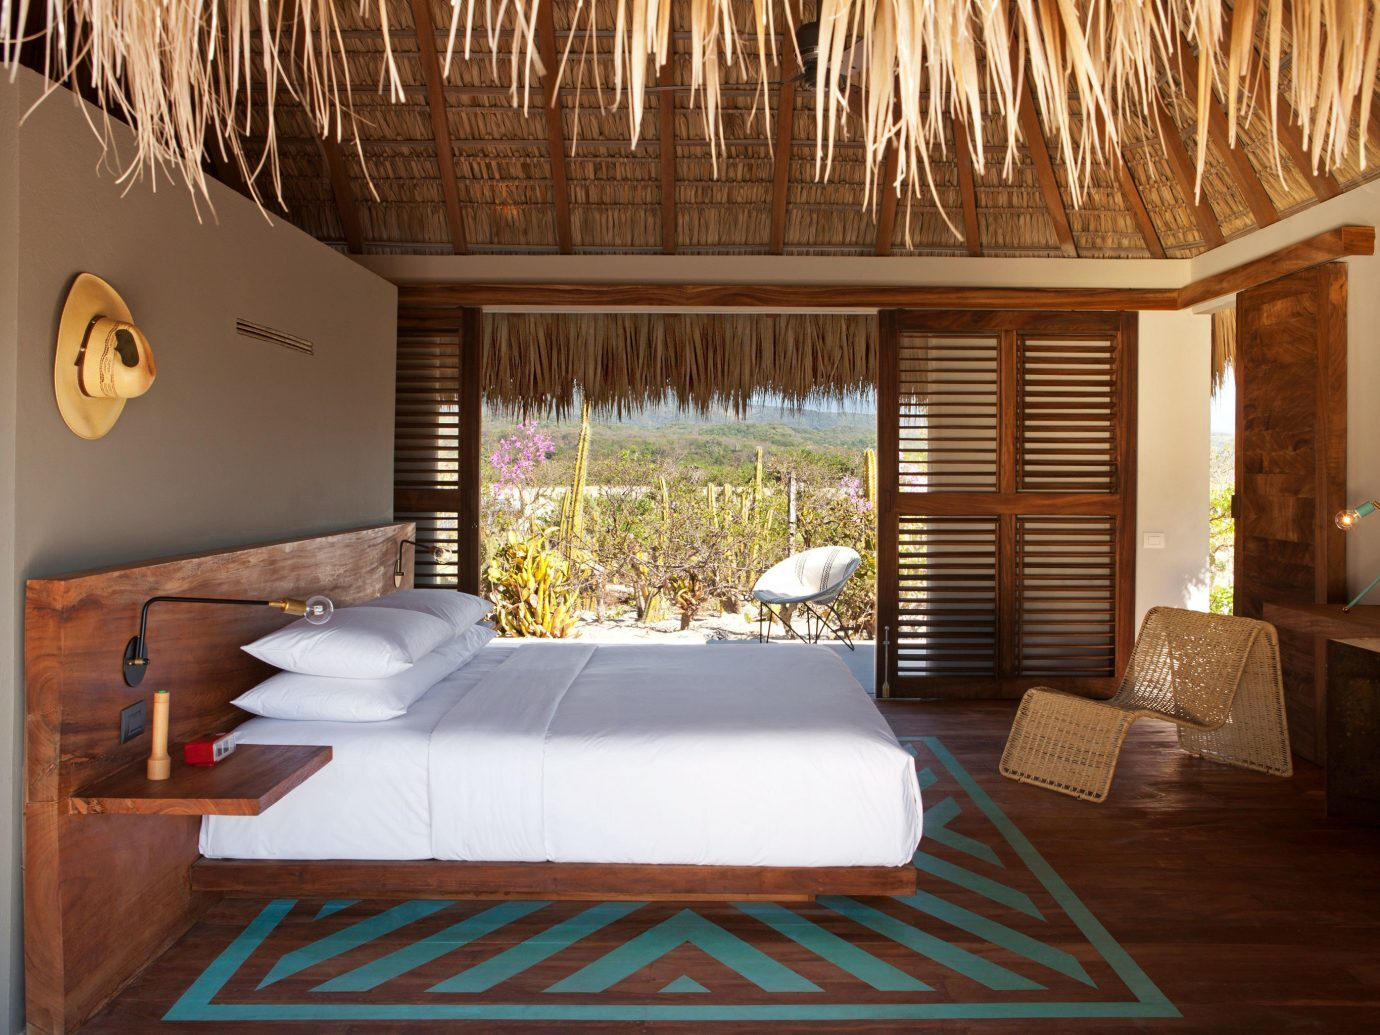 Bedroom at Hotel Escondido, Puerto Escondido